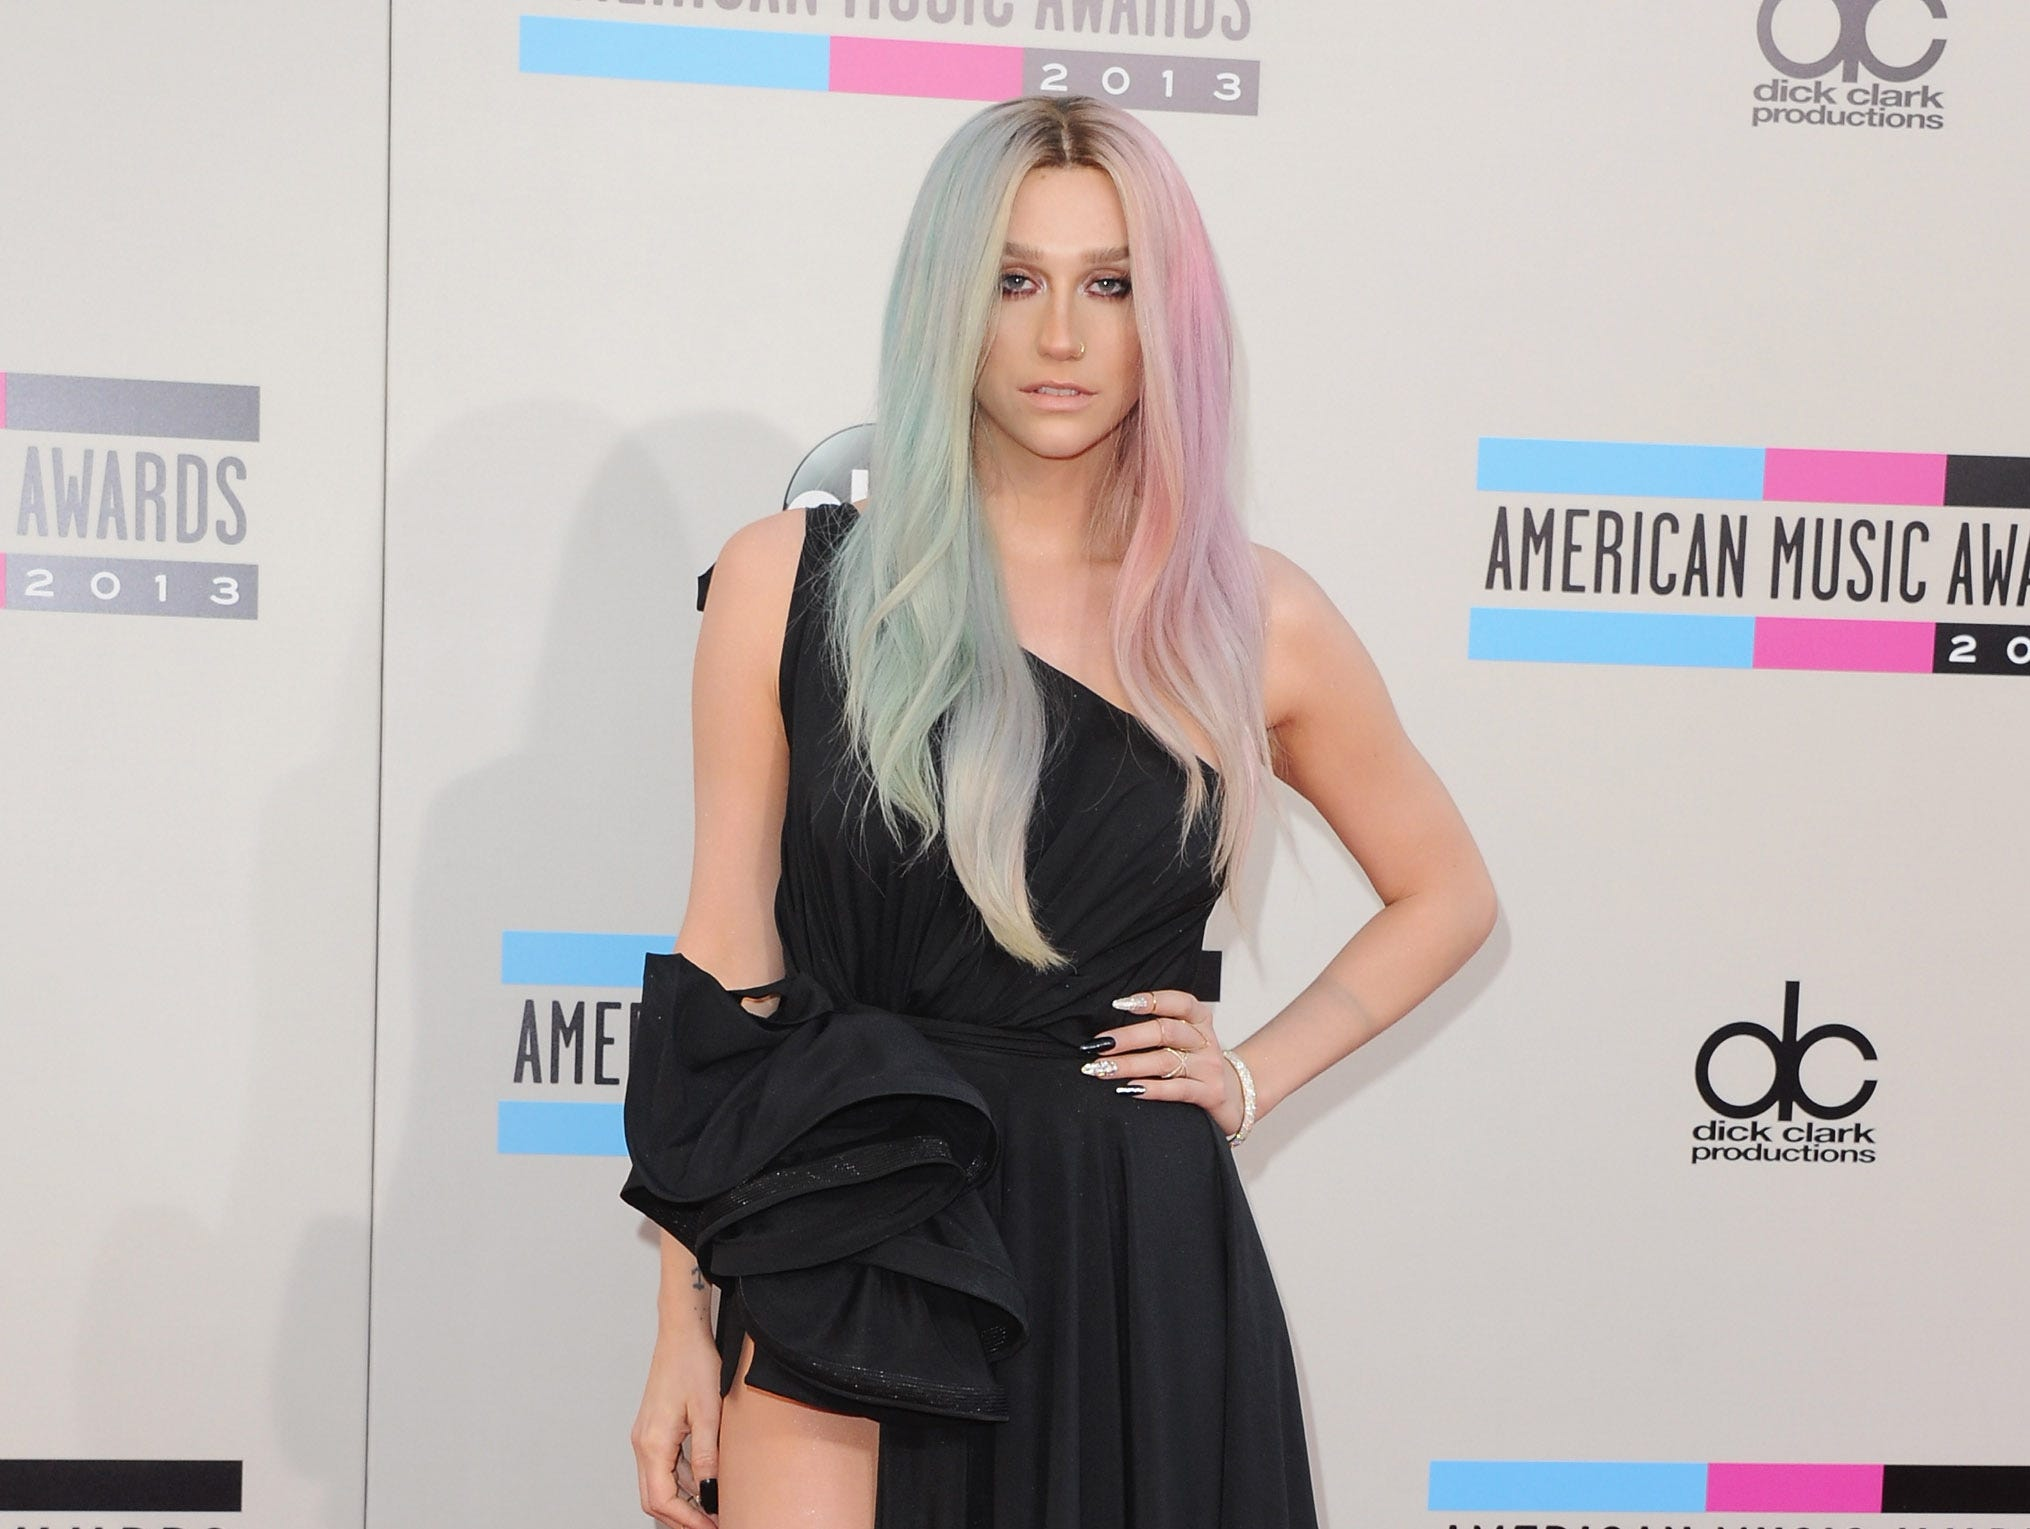 Kesha arrives at the 2013 American Music Awards on November 24, 2013 in Los Angeles, California.